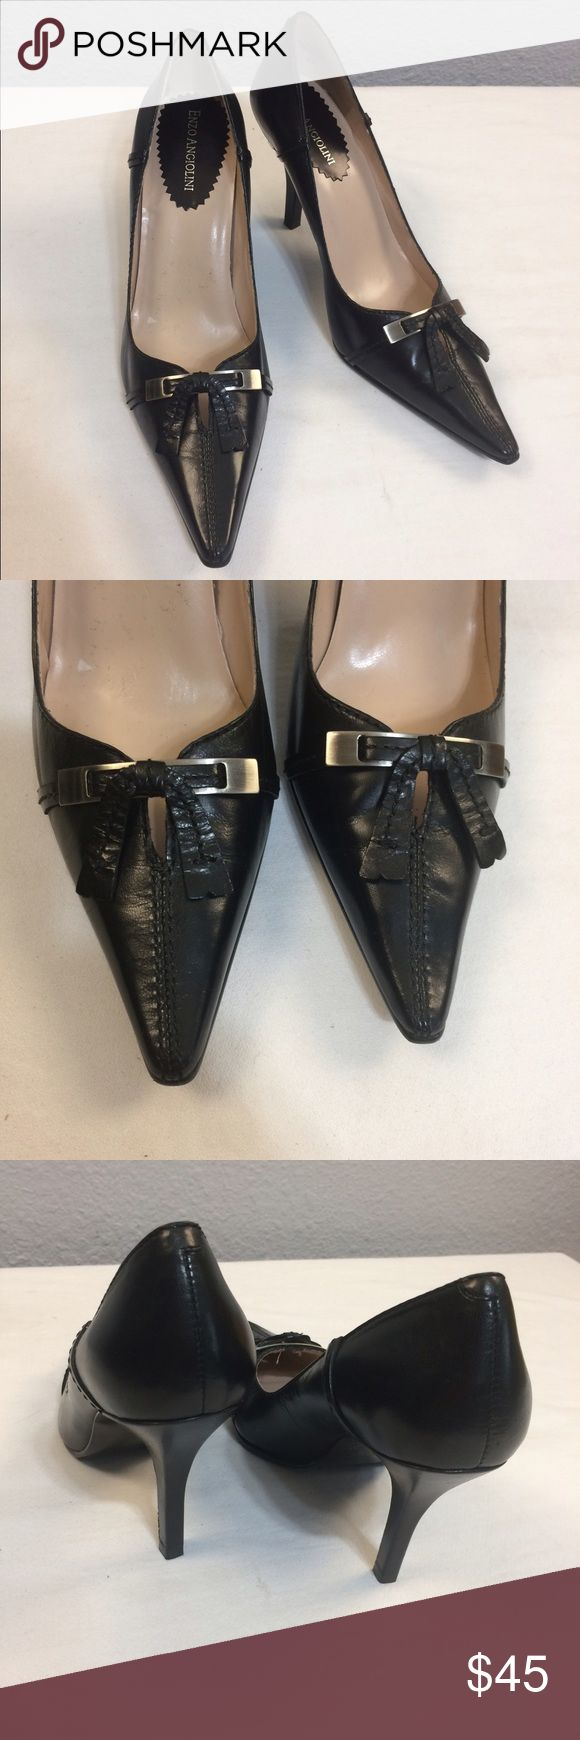 SALE🎉Enzo Angiolini leather pointy toe pumps NWOT Gorgeous black pumps with a 3.5 inch heel. Perfect condition. No flaws or defects. Great for work or a night on the town. Classic wardrobe staple. Enzo Angiolini Shoes Heels